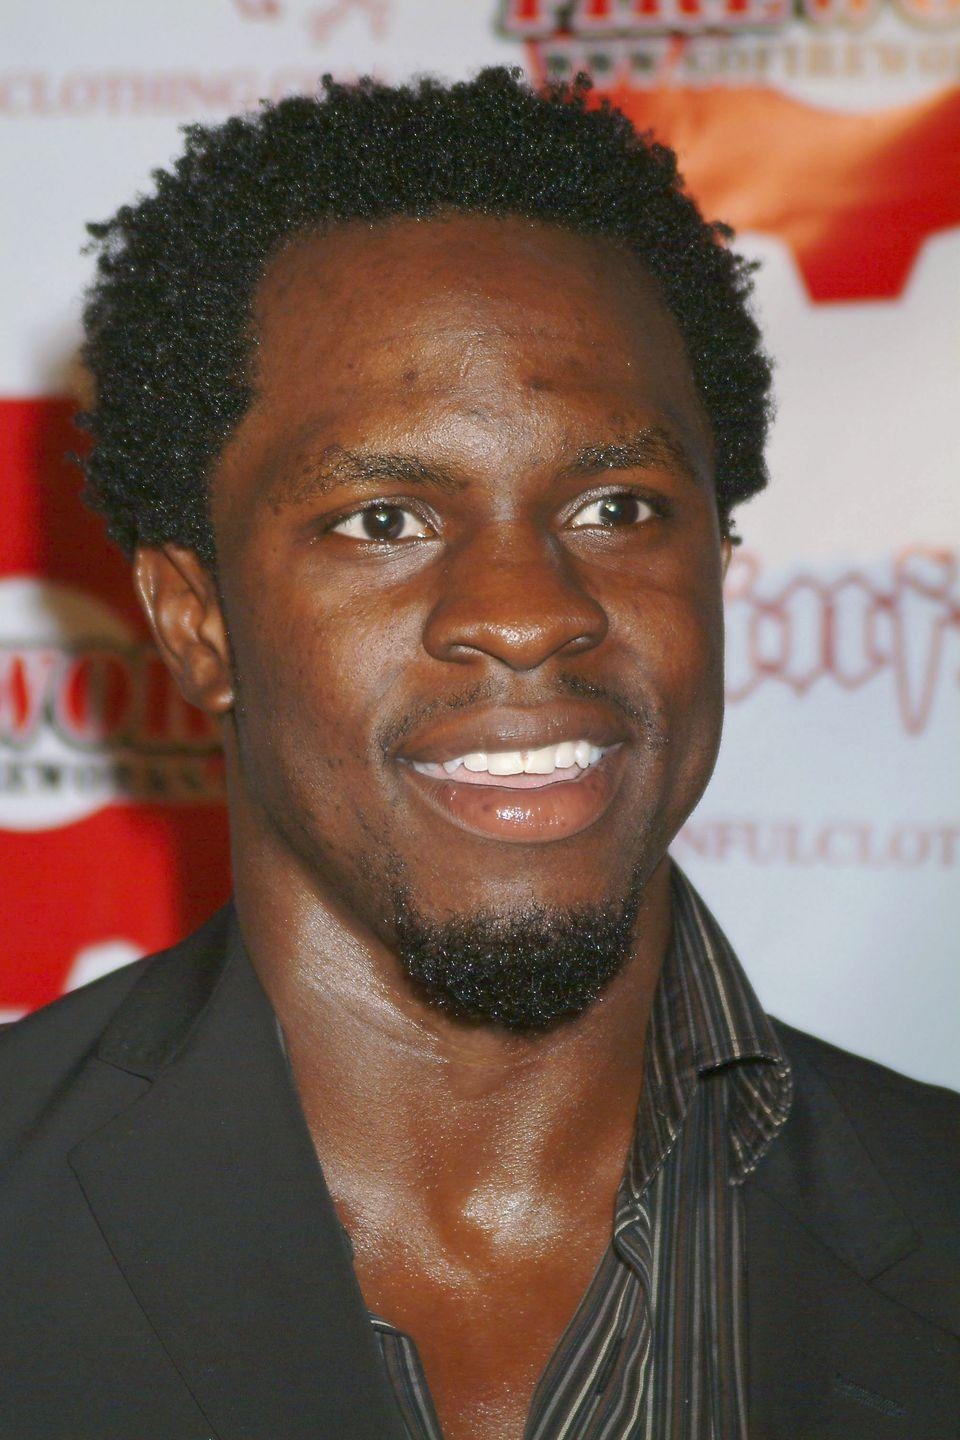 """<p>Akinnagbe starred as Chris Partlow, a Stanfield gang enforcer. Though it was his first TV role, he confessed to <a href=""""https://www.maxim.com/entertainment/maxim-interrogates-makers-and-stars-wire"""" rel=""""nofollow noopener"""" target=""""_blank"""" data-ylk=""""slk:Maxim"""" class=""""link rapid-noclick-resp""""><em>Maxim</em></a> that the role came naturally to him: """"Embodying someone this dark, unfortunately, was not that difficult for me. I grew up with people like this."""" </p>"""